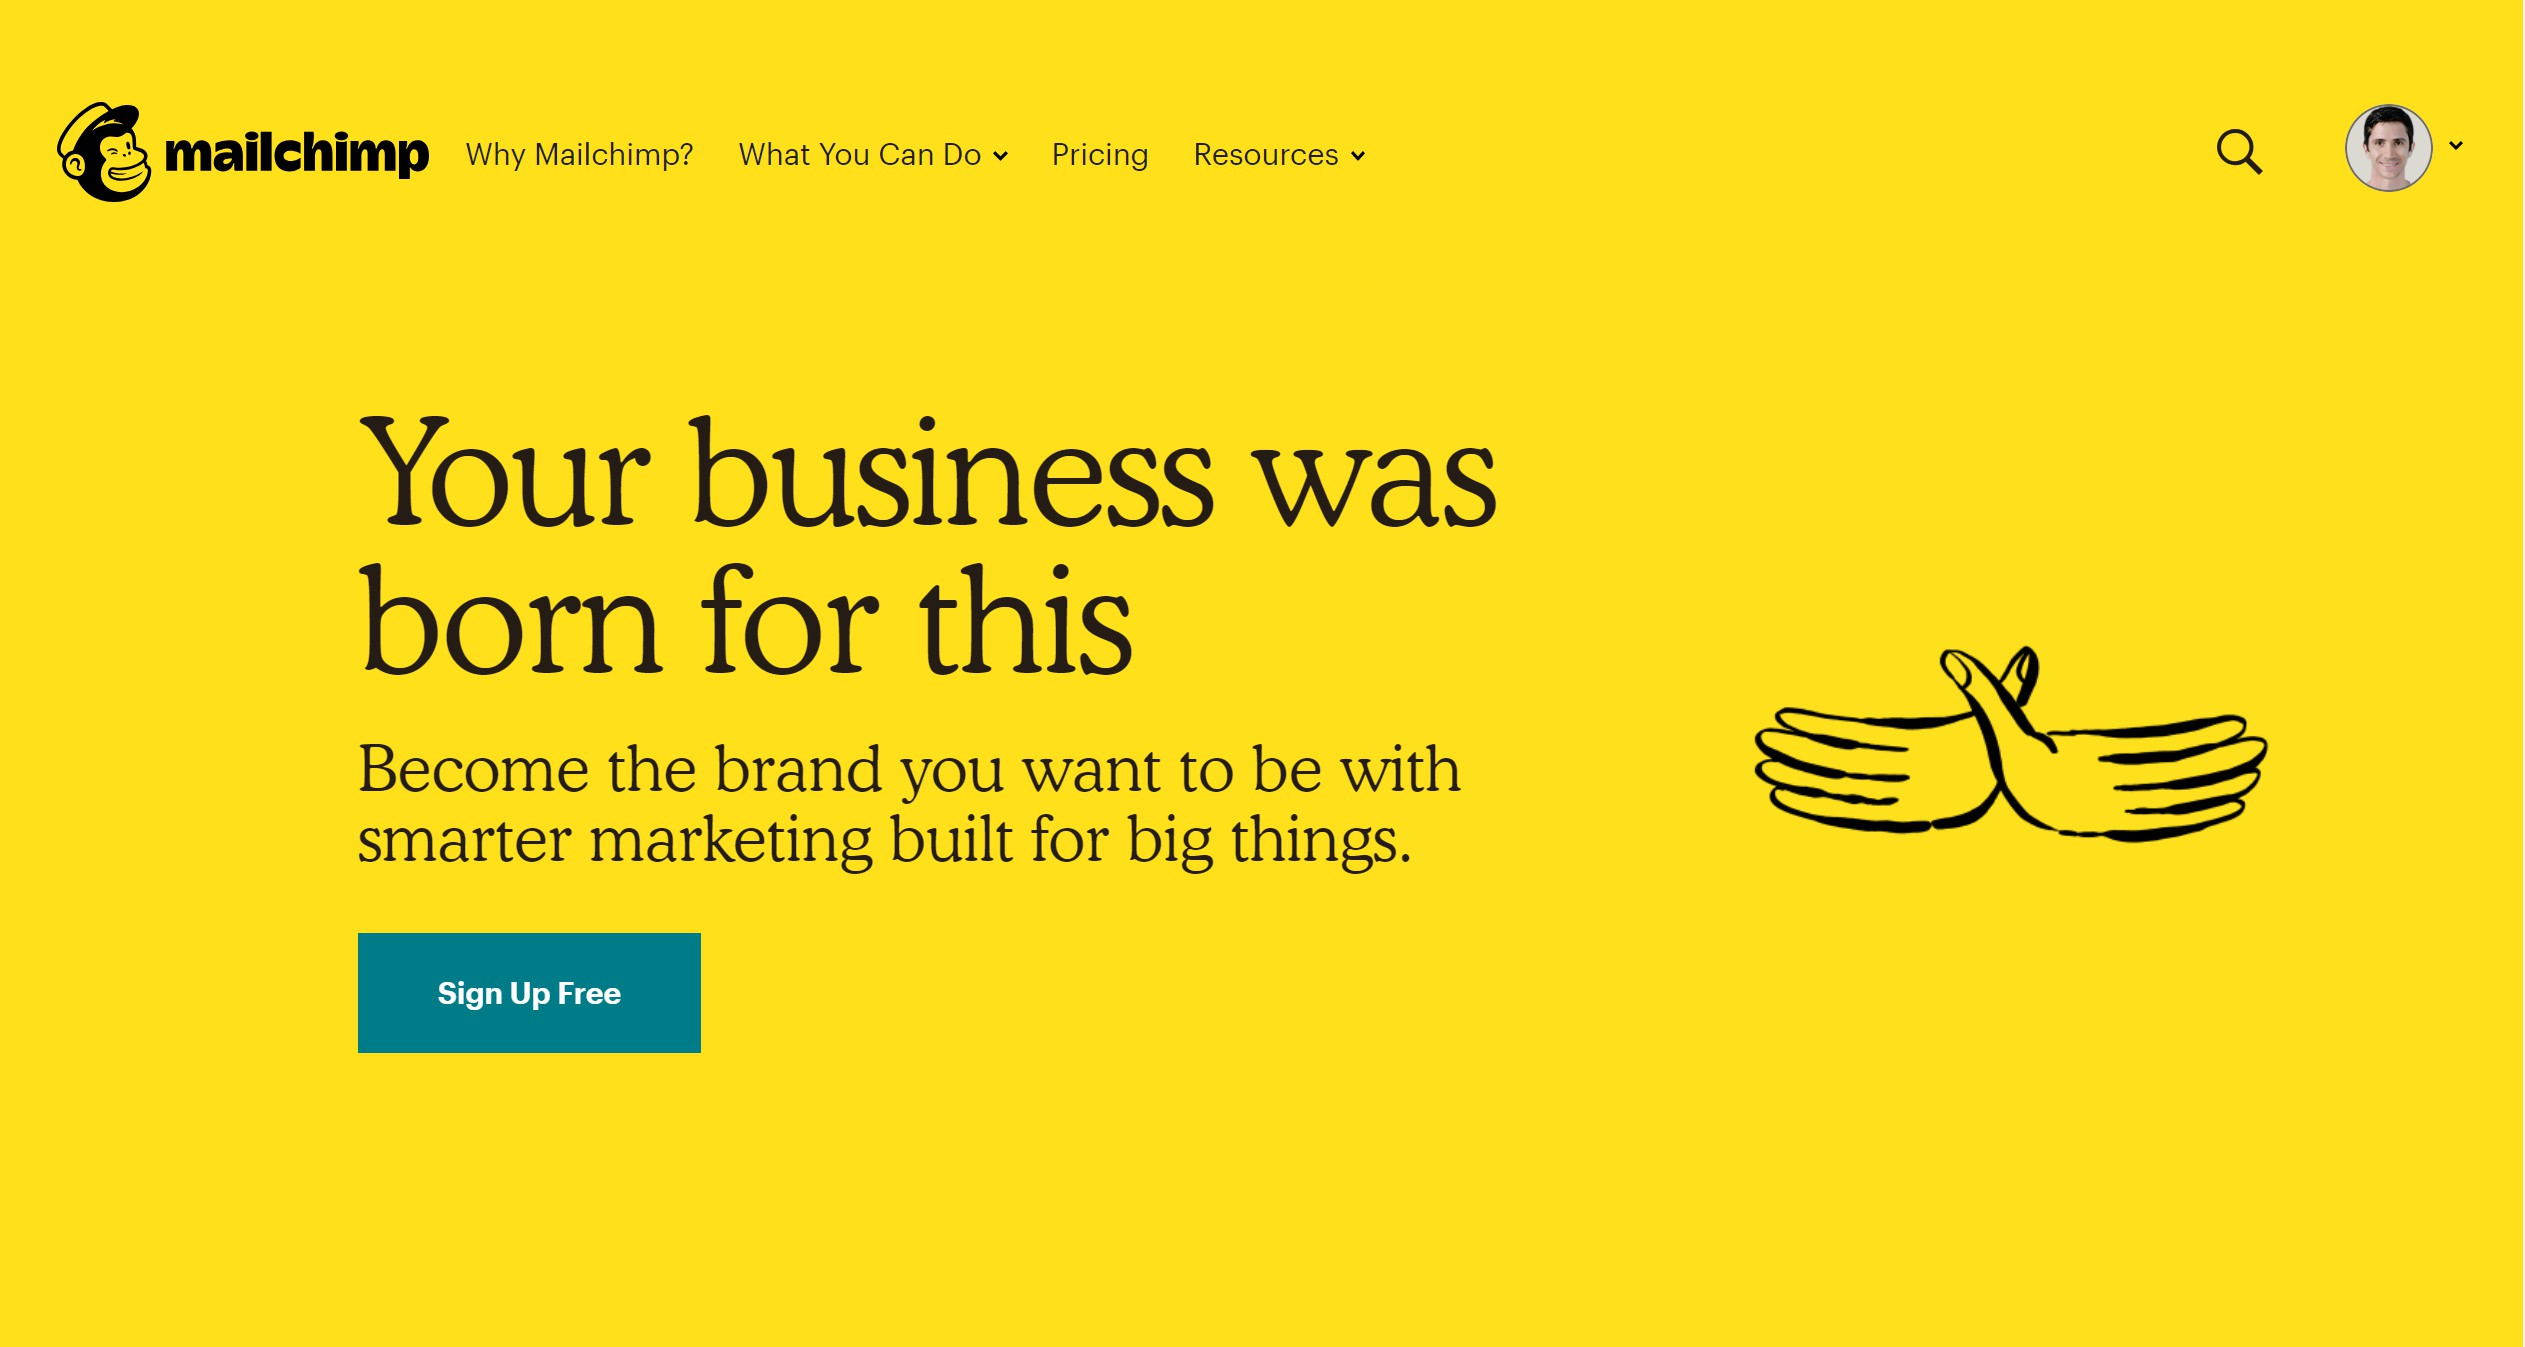 Mailchimp is one of the best email marketing services